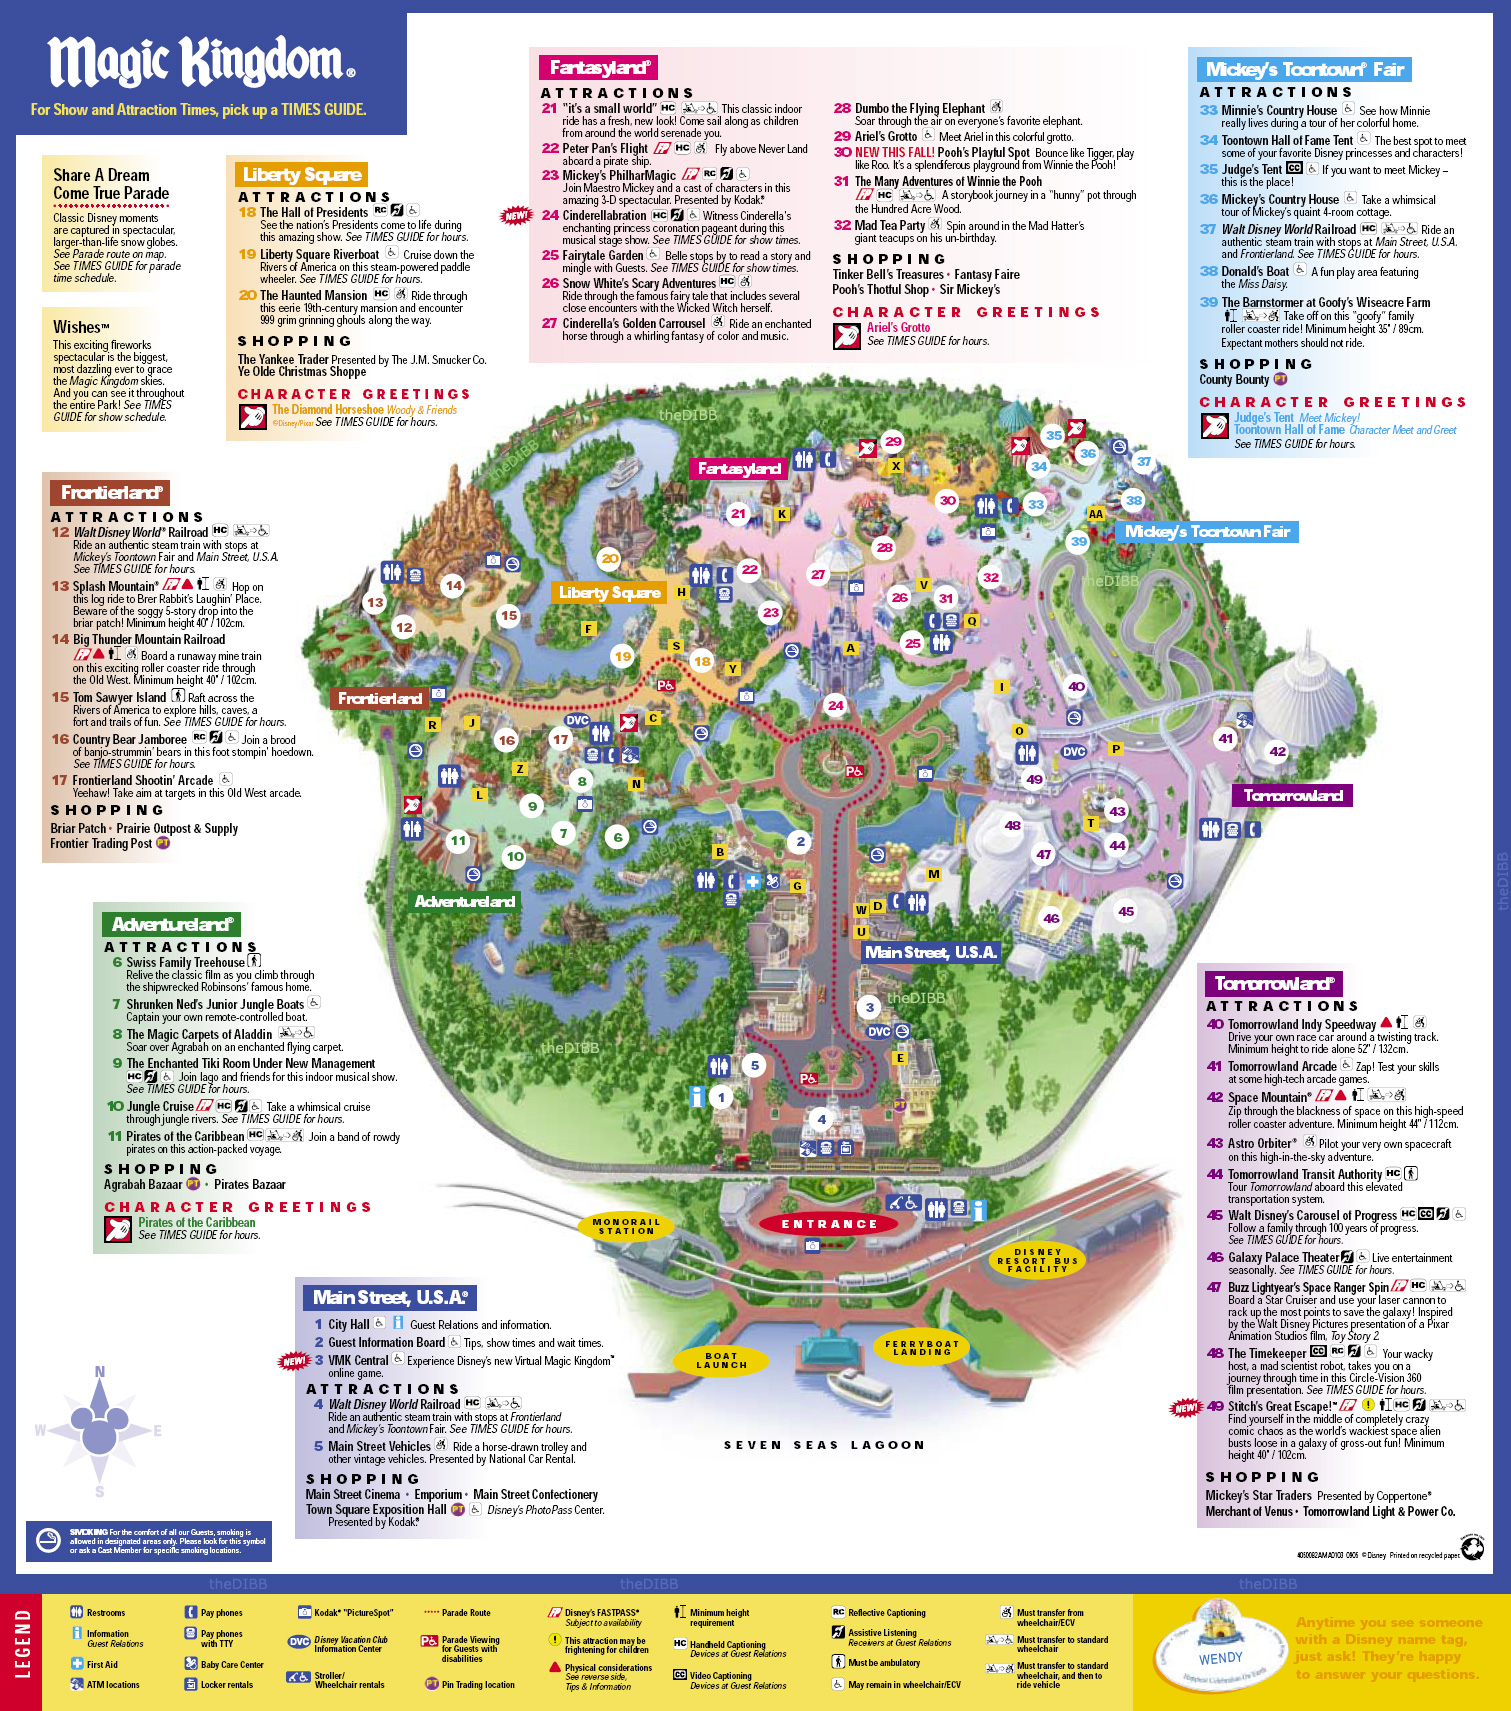 photograph about Printable Magic Kingdom Maps known as Disneys Magic Kingdom Map - Disney039s Magic Kingdom Orlando